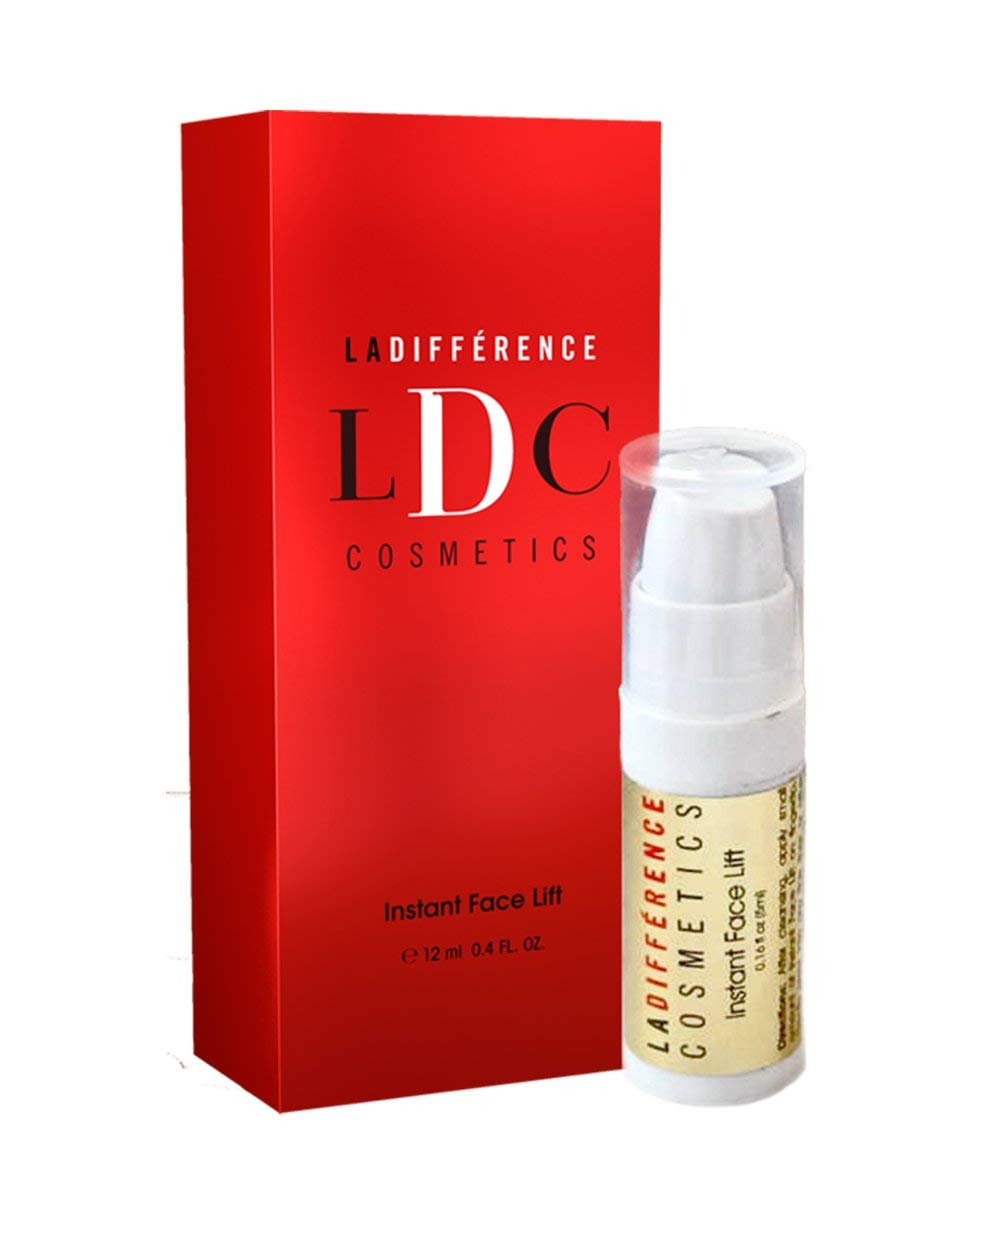 LA DIFFÉRENCE LDC COSMETICS Luxury Instant Face Lift Travel Size - Best Face & Neck Firming Lotion, Smoothes Wrinkles and Fine Lines - by La Différence Cosmetics